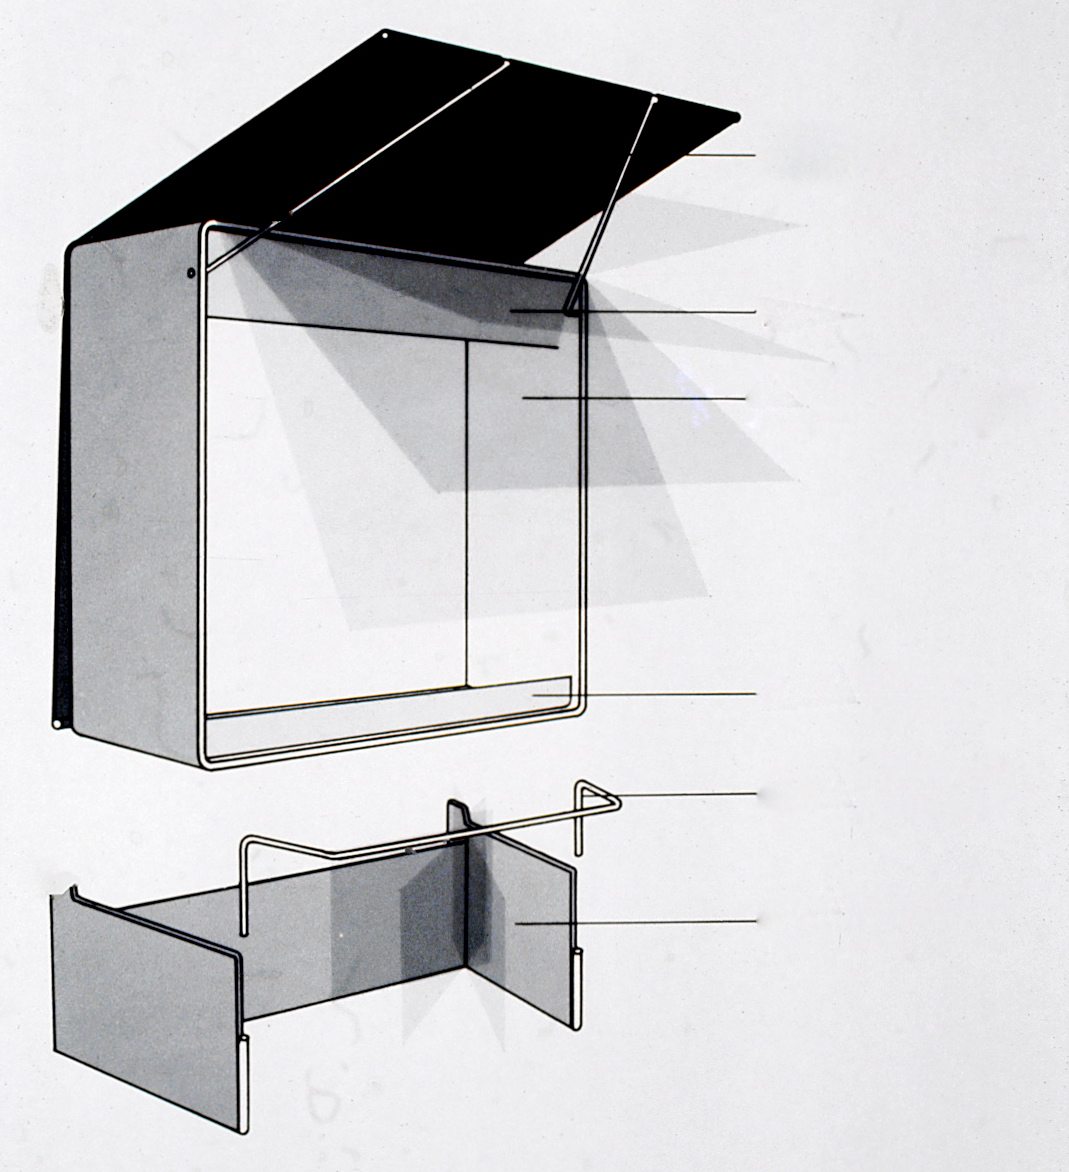 Design concept drawing for exhibit display cases.